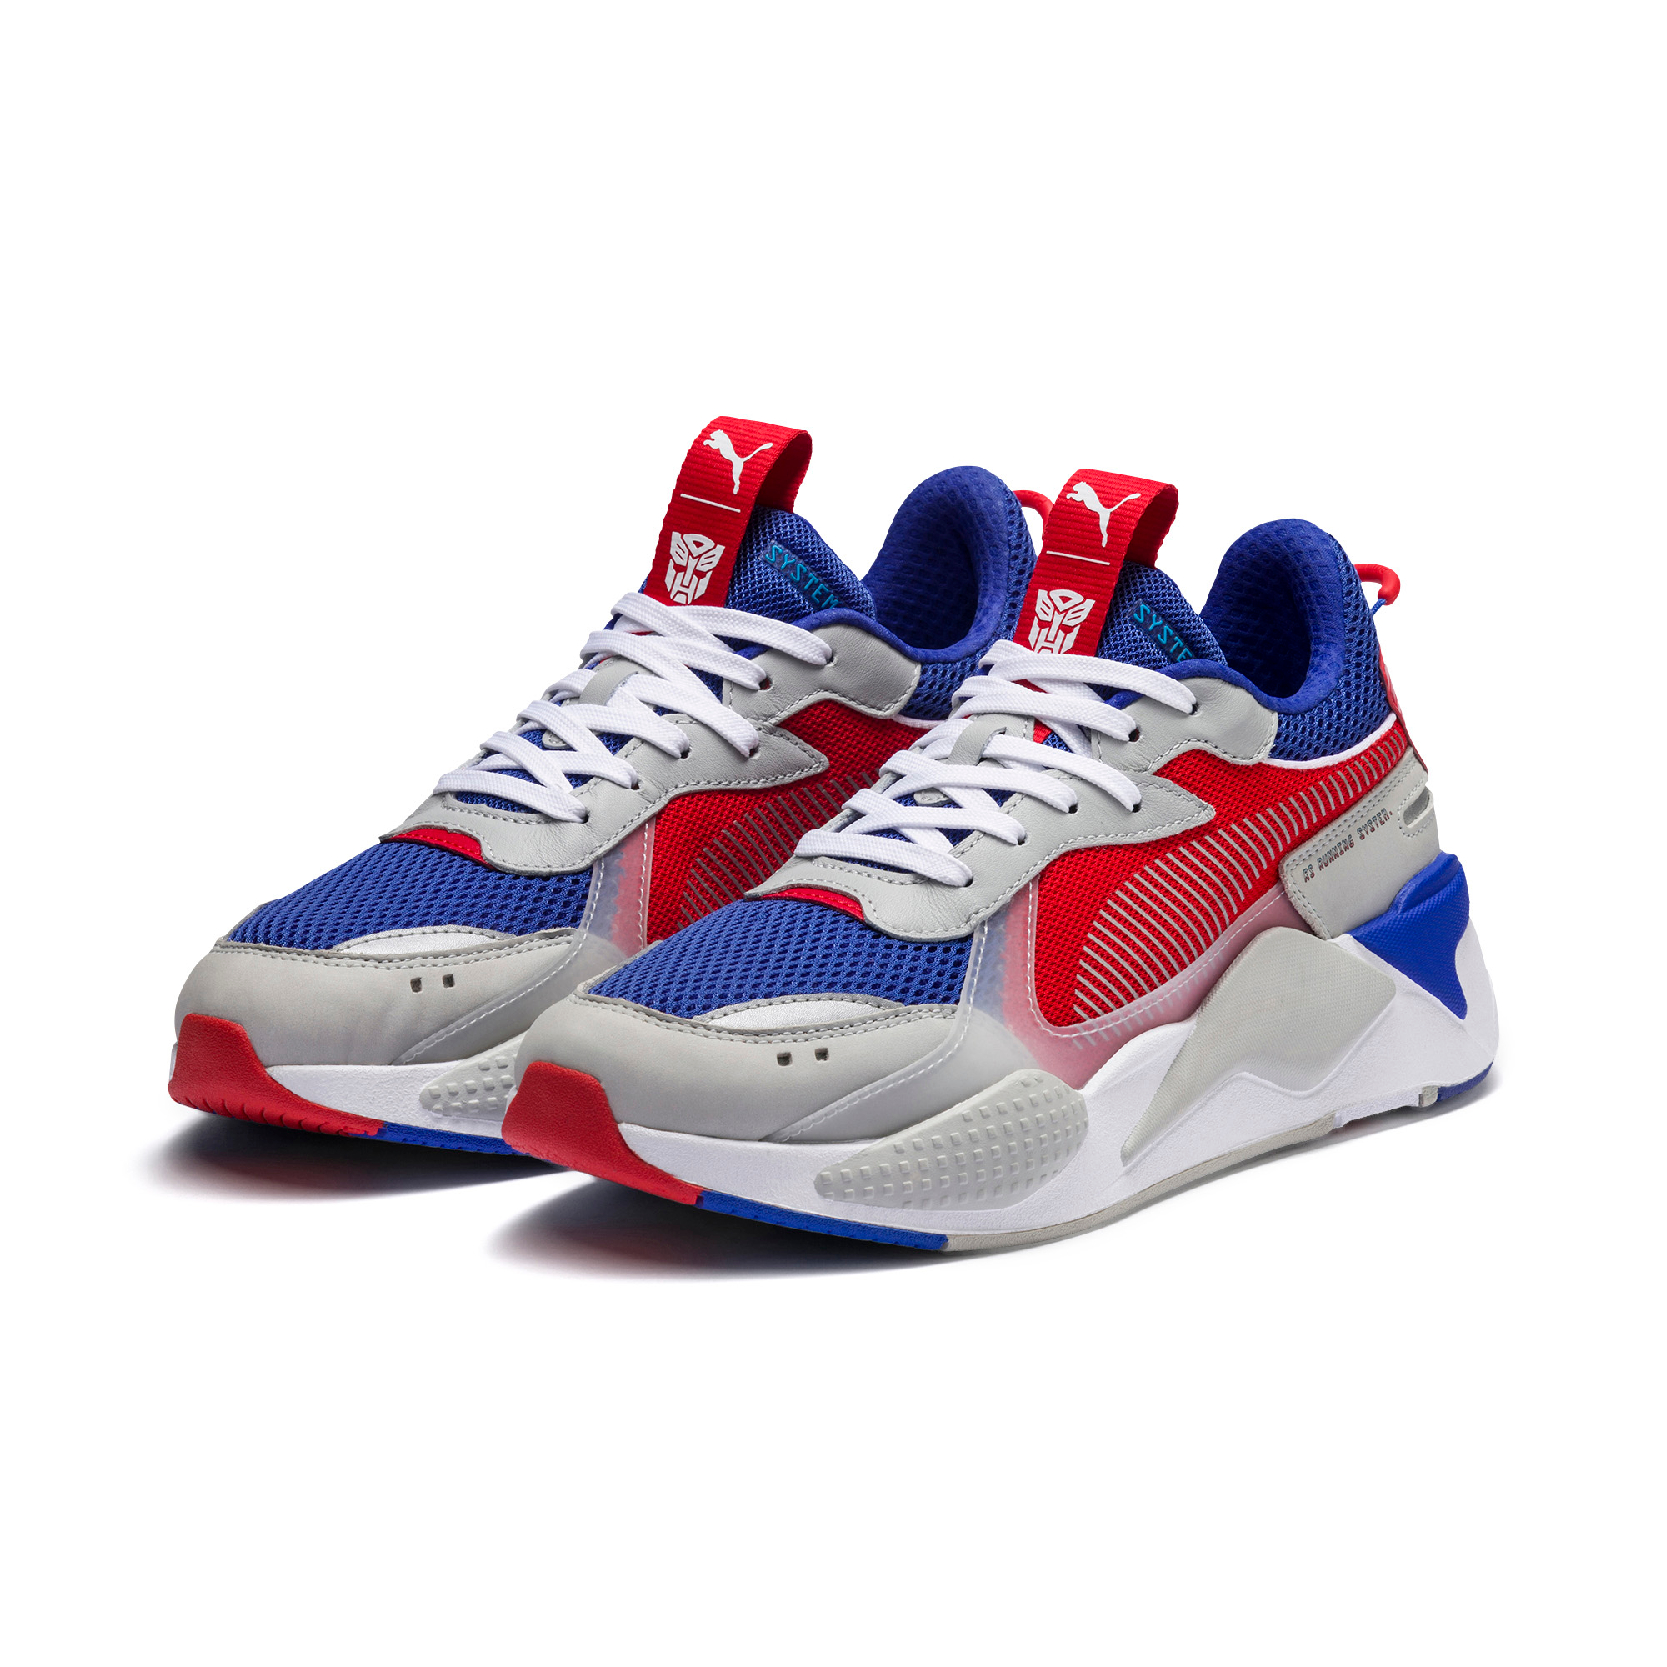 RS-X Transformers Pack (Puma and Hasbro